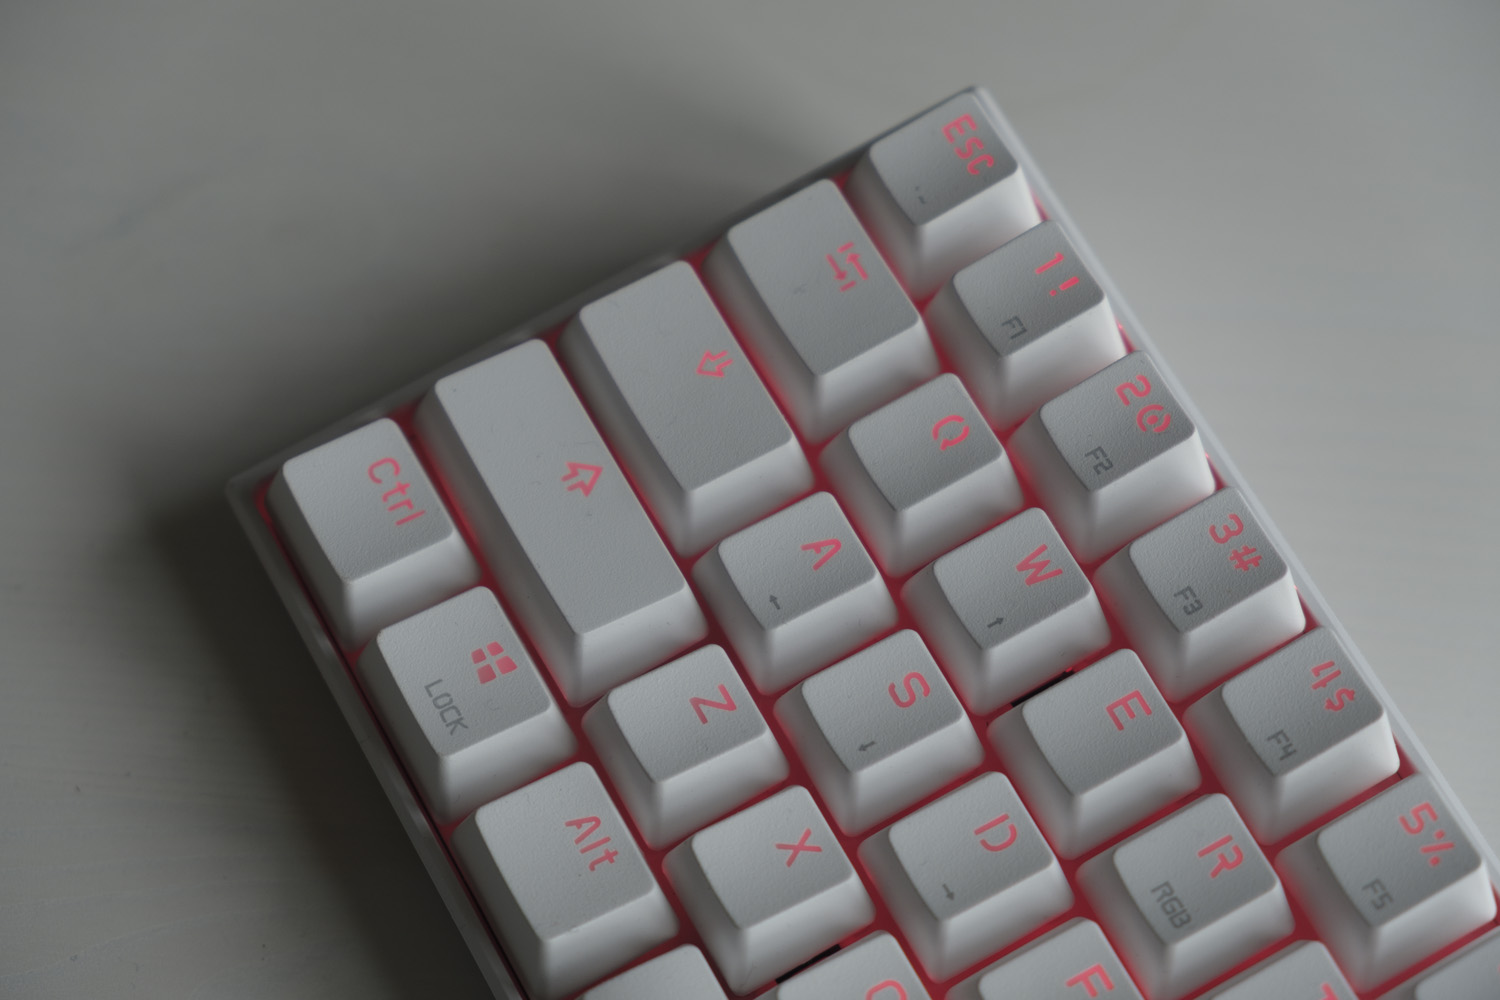 56b4dd3f36aee Obins Anne Pro review  the best 60% keyboard I ve ever used - Review ...